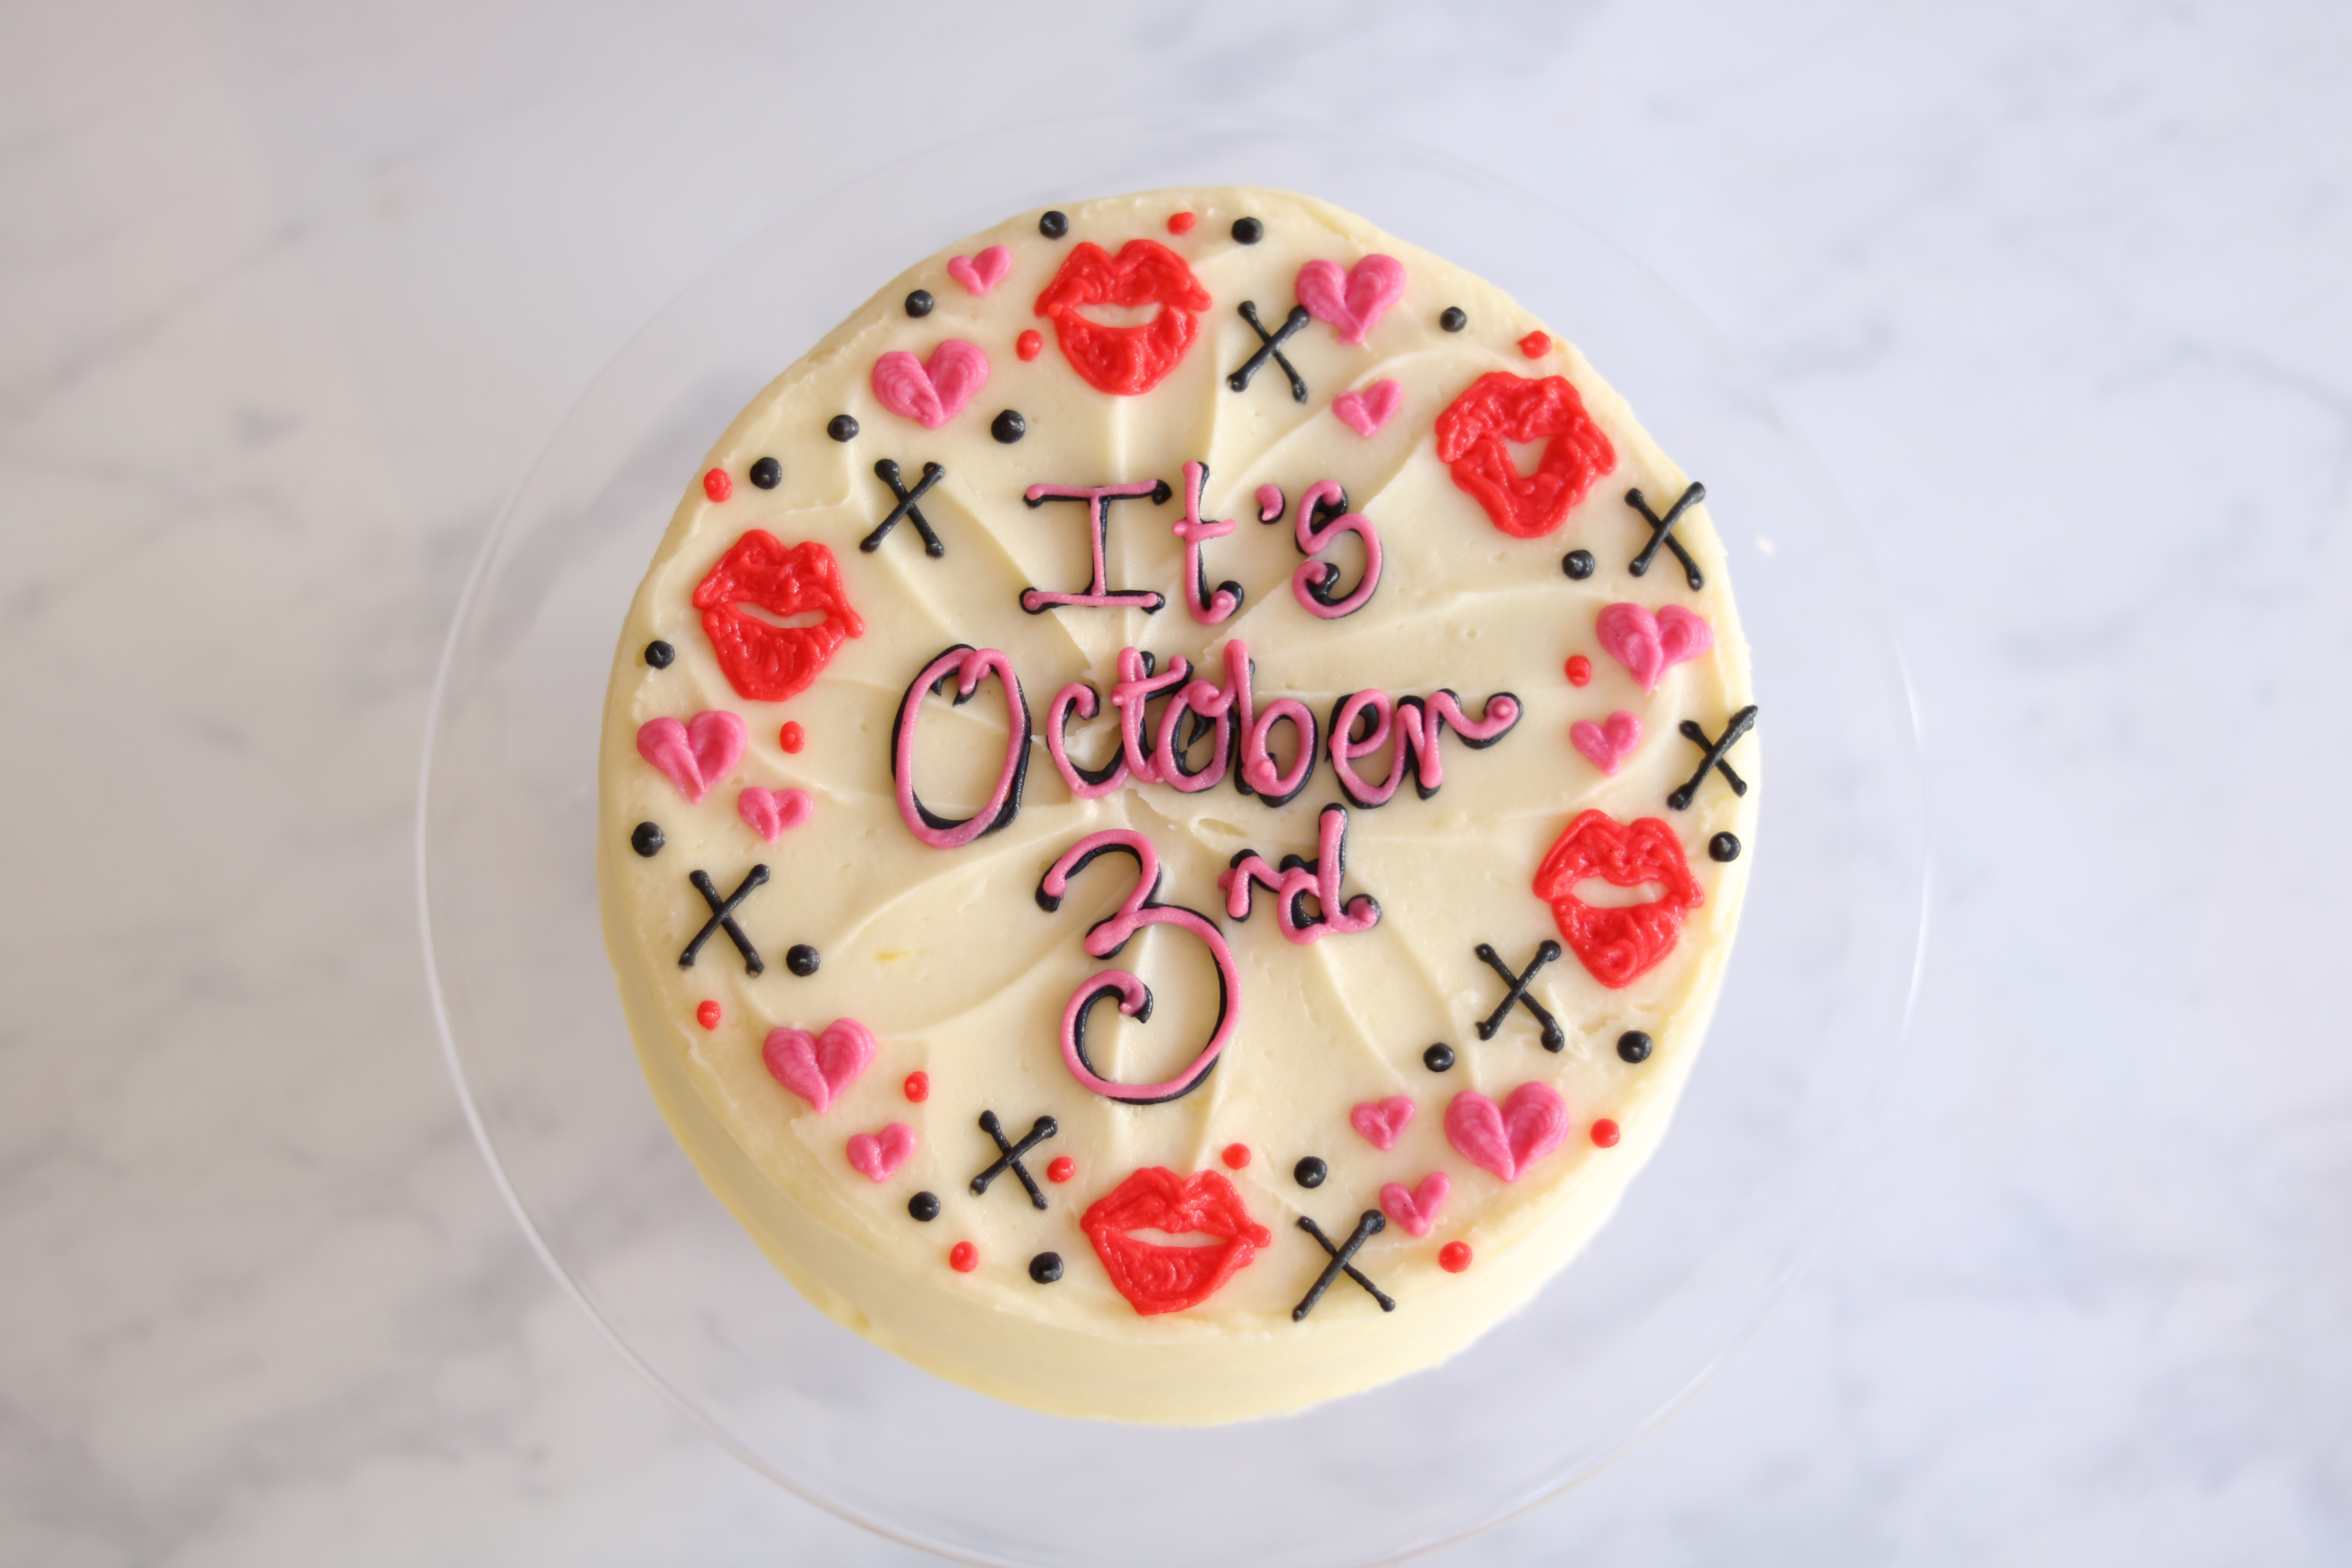 personalised cakes mean girls